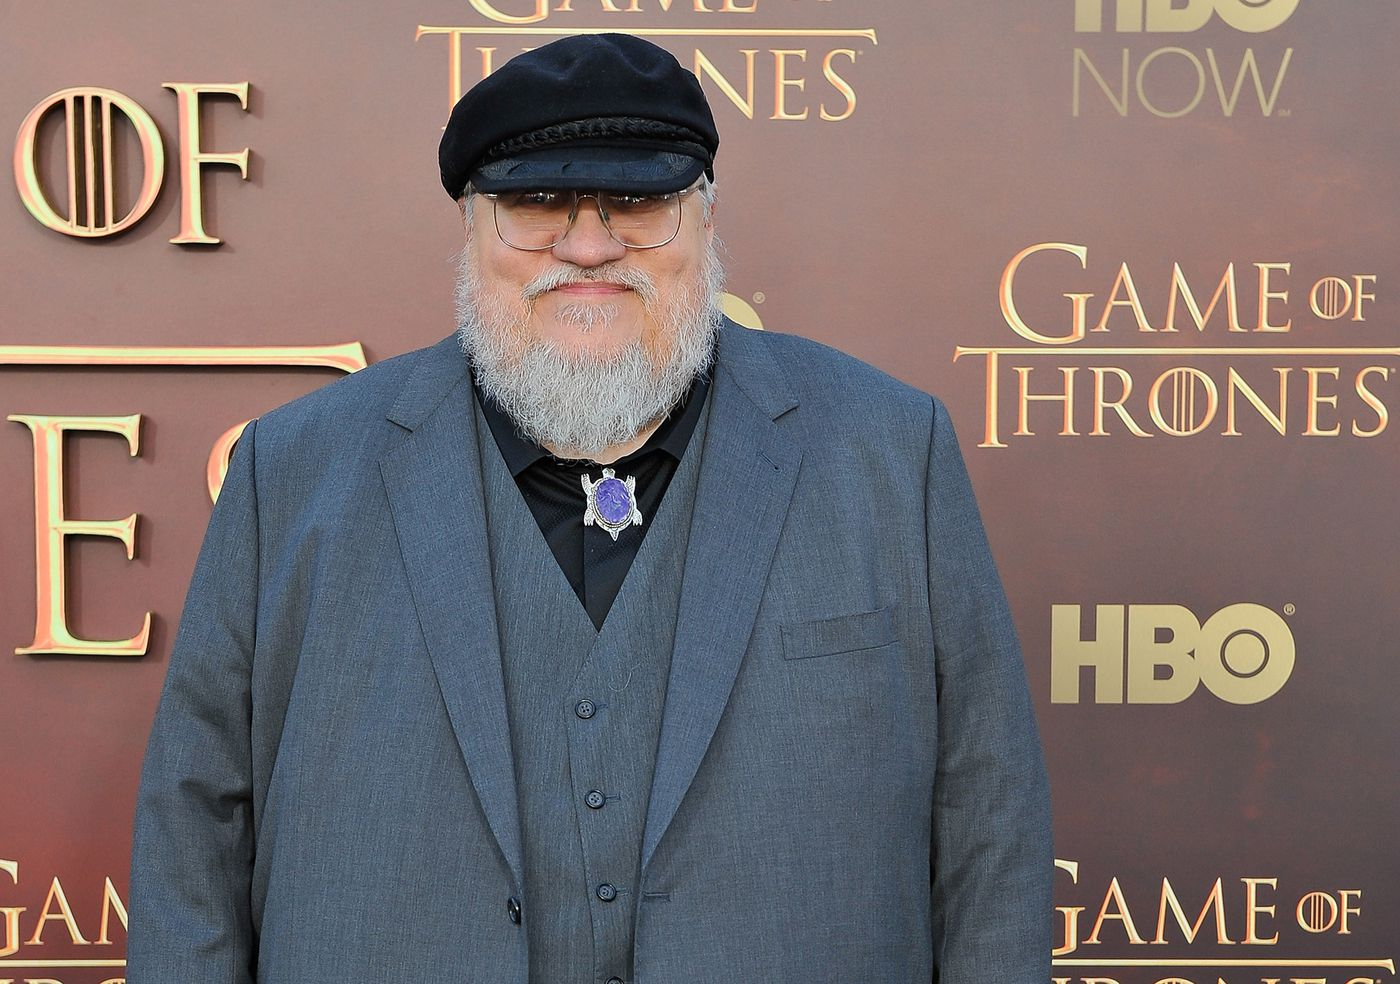 Game of Thrones prequel series: cast, release date & spinoff details